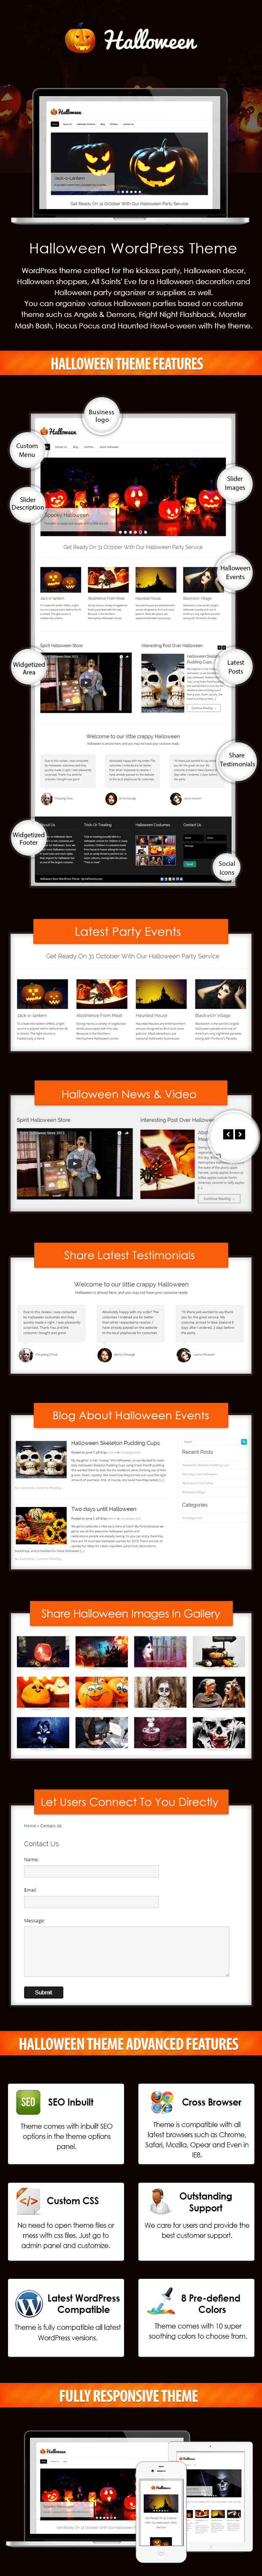 Halloween Store WP Theme